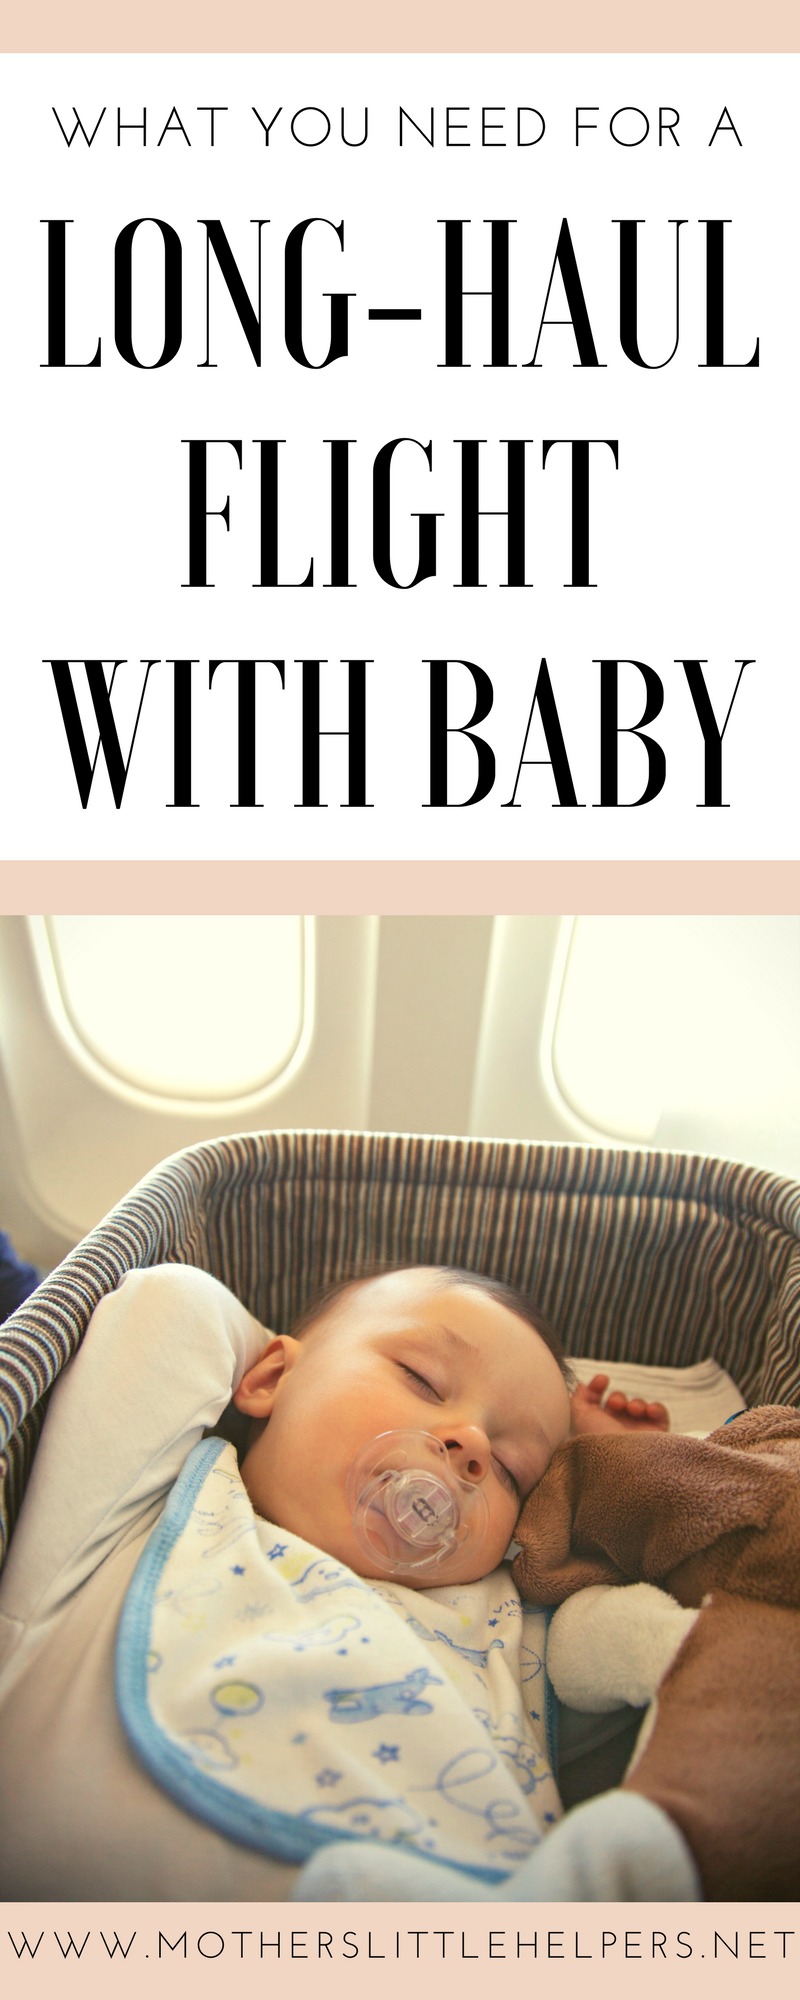 Anxious about your upcoming long haul flight with Baby? Do you know what you need to pack for you and your baby for an overseas flight? These tips and products will help you and you relax and enjoy traveling with baby.